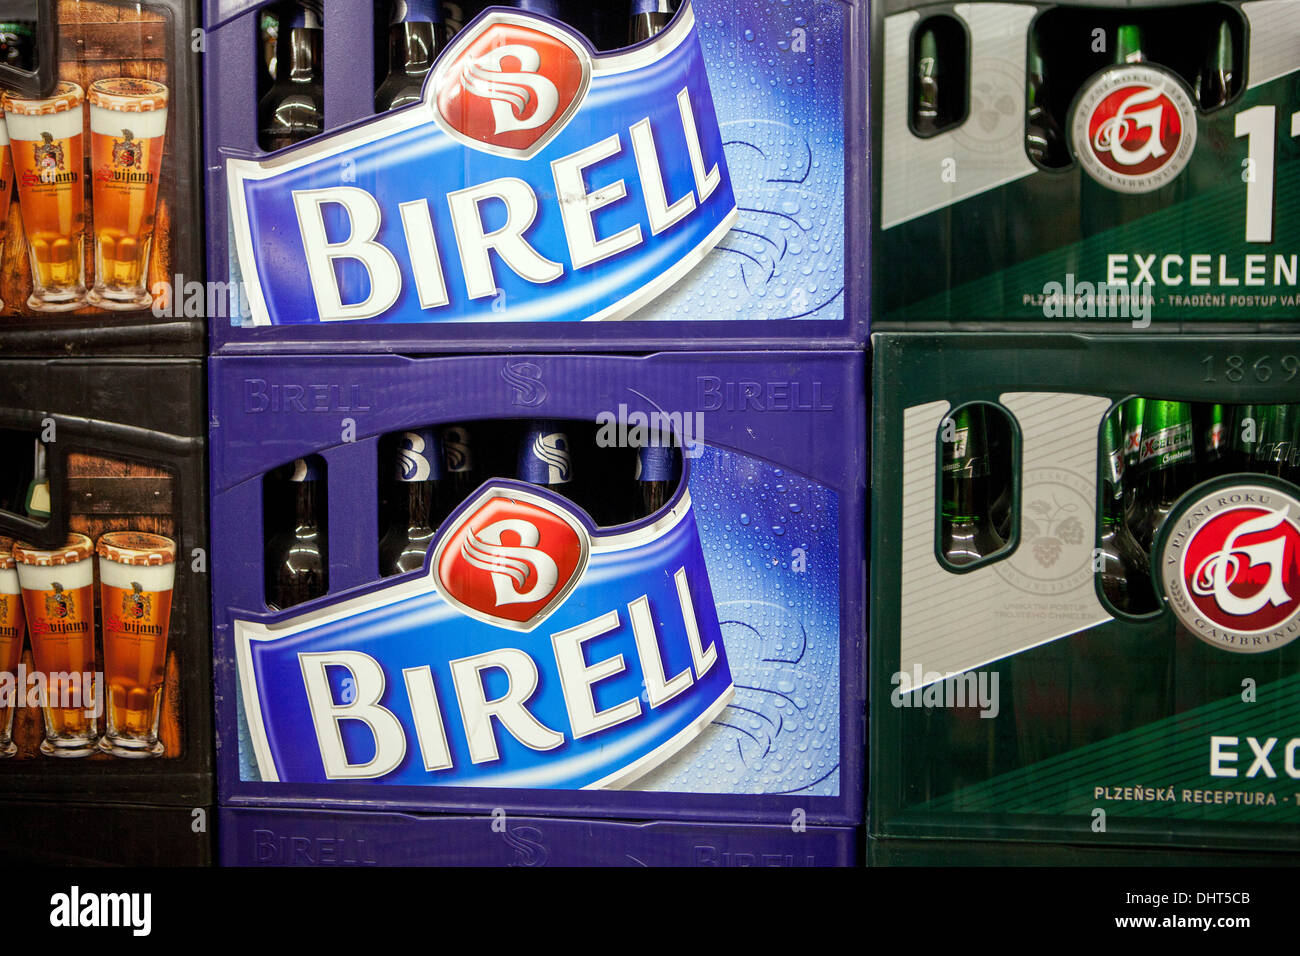 non-alcoholic beer Birell crate logo sign Czech - Stock Image